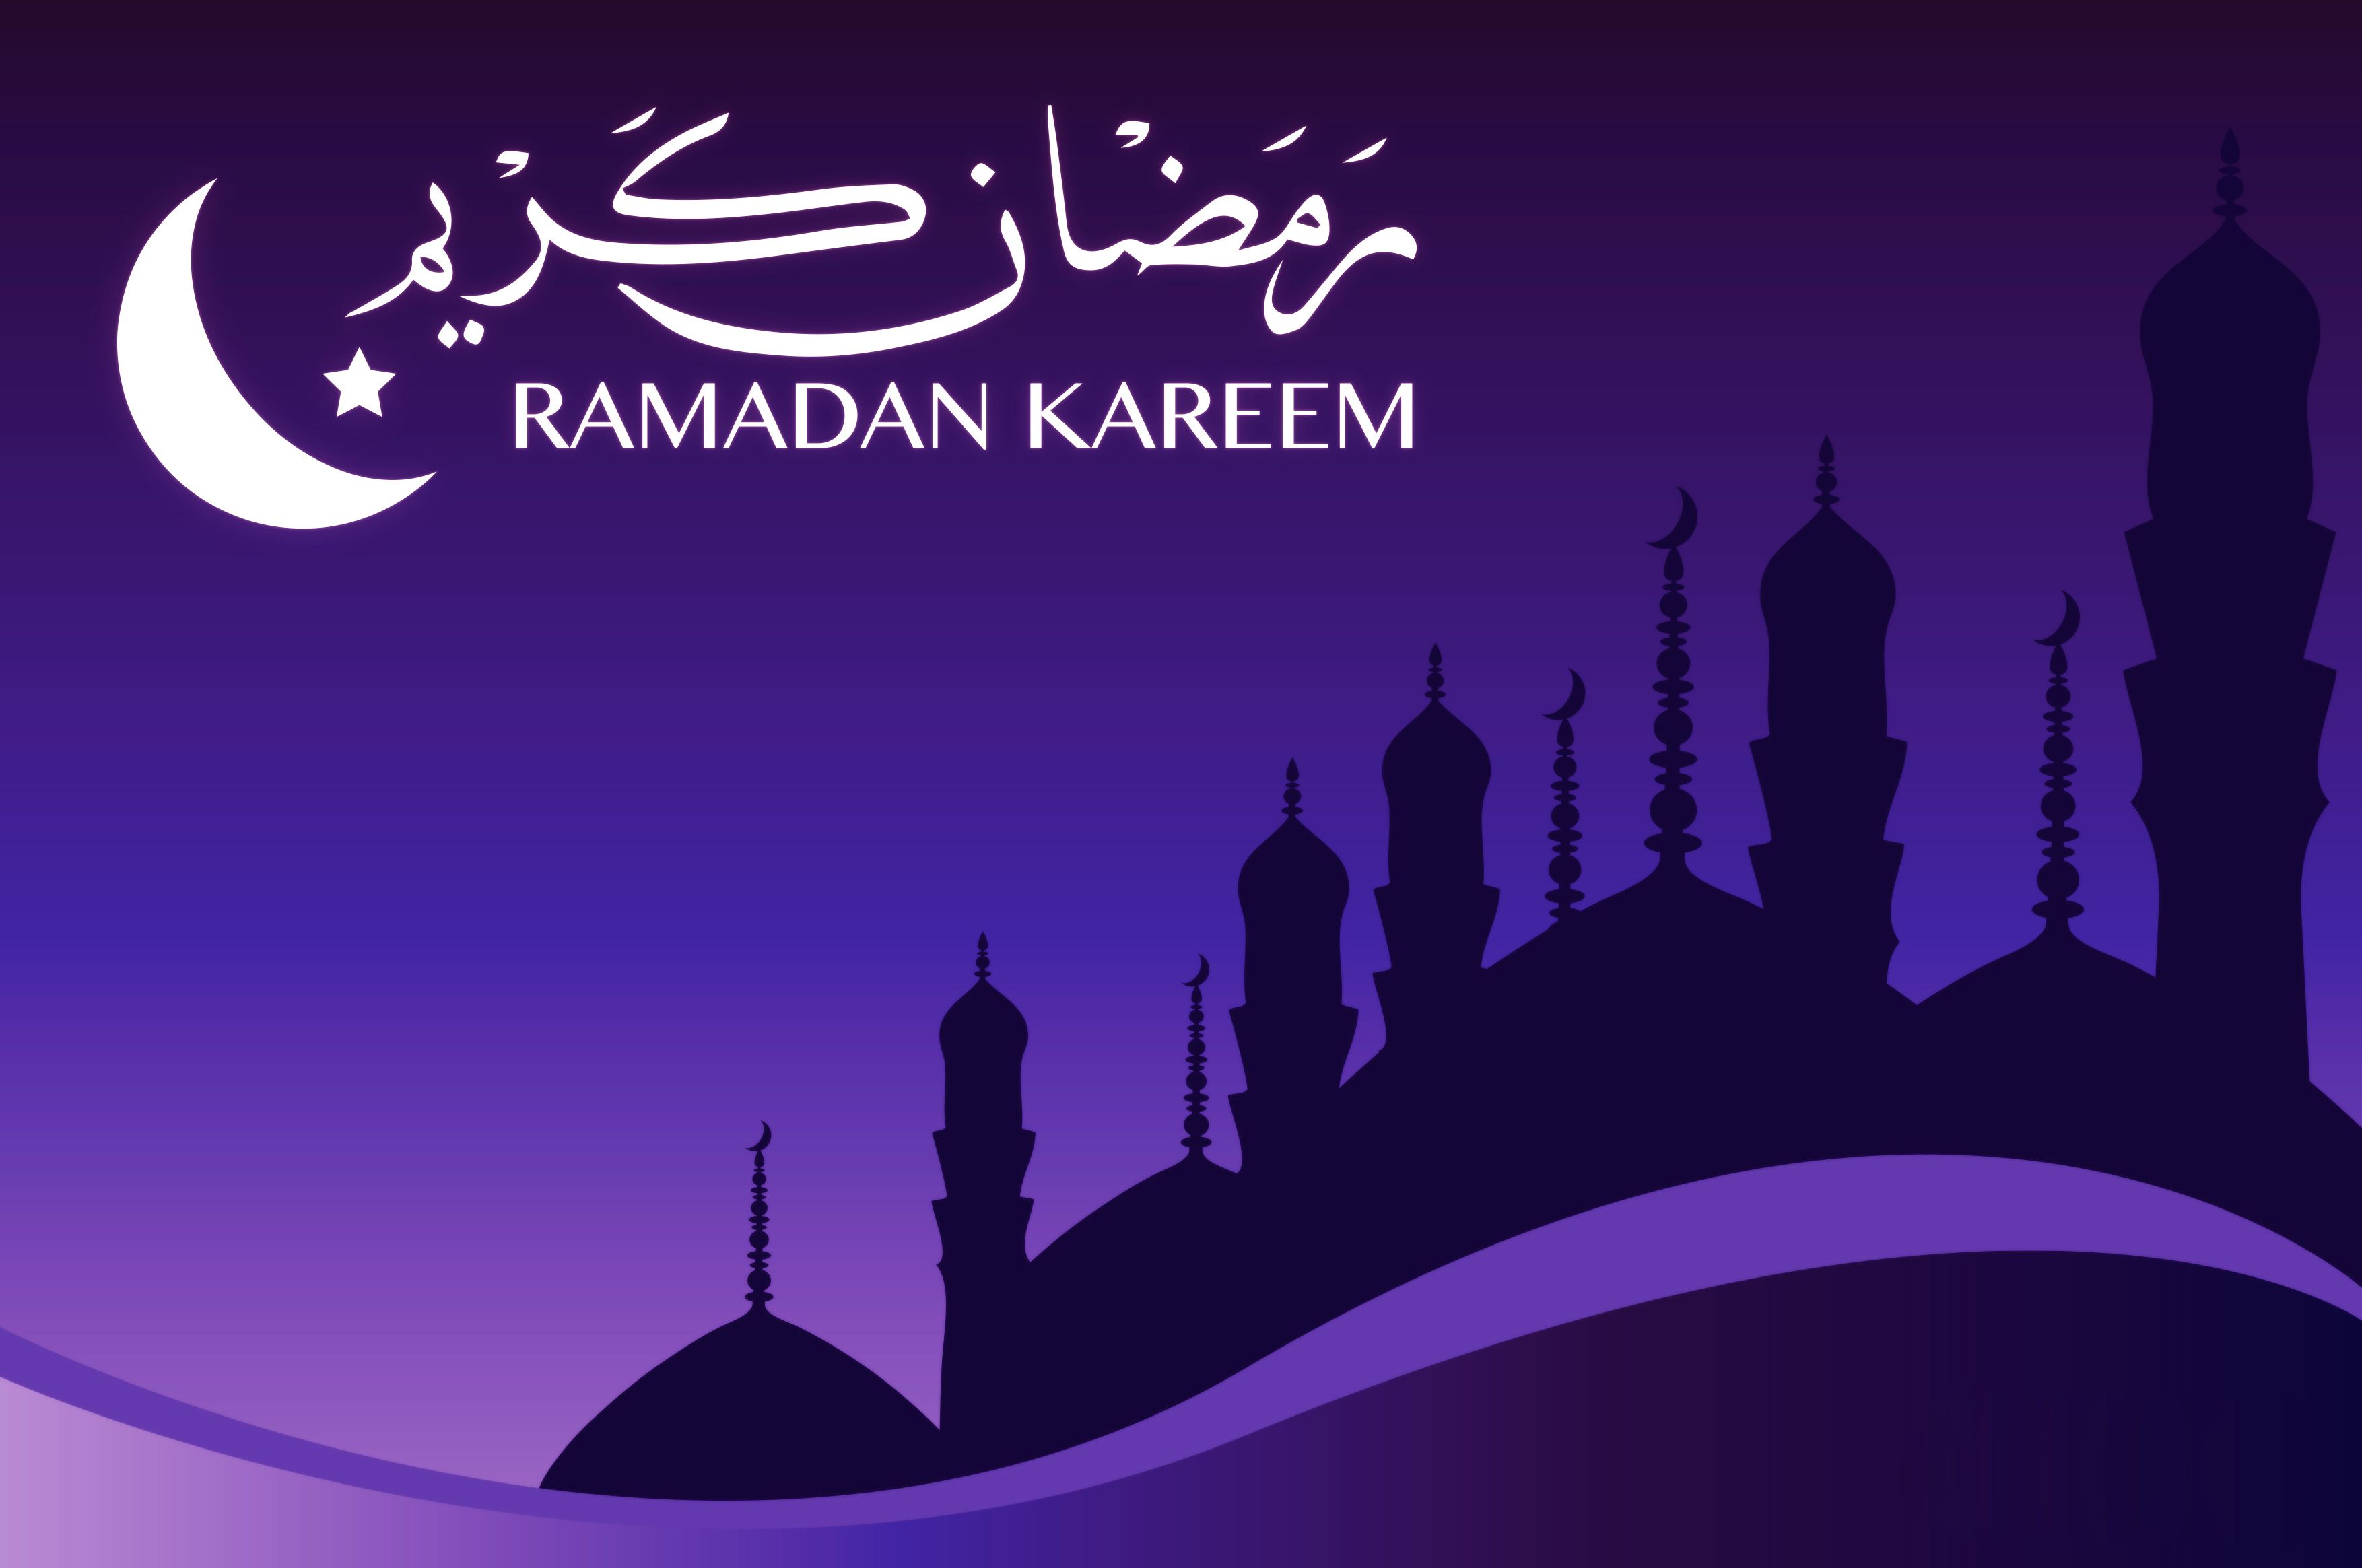 Ramadan Mubarak Ultra Hd 4k Wallpapers 2018 Download Free